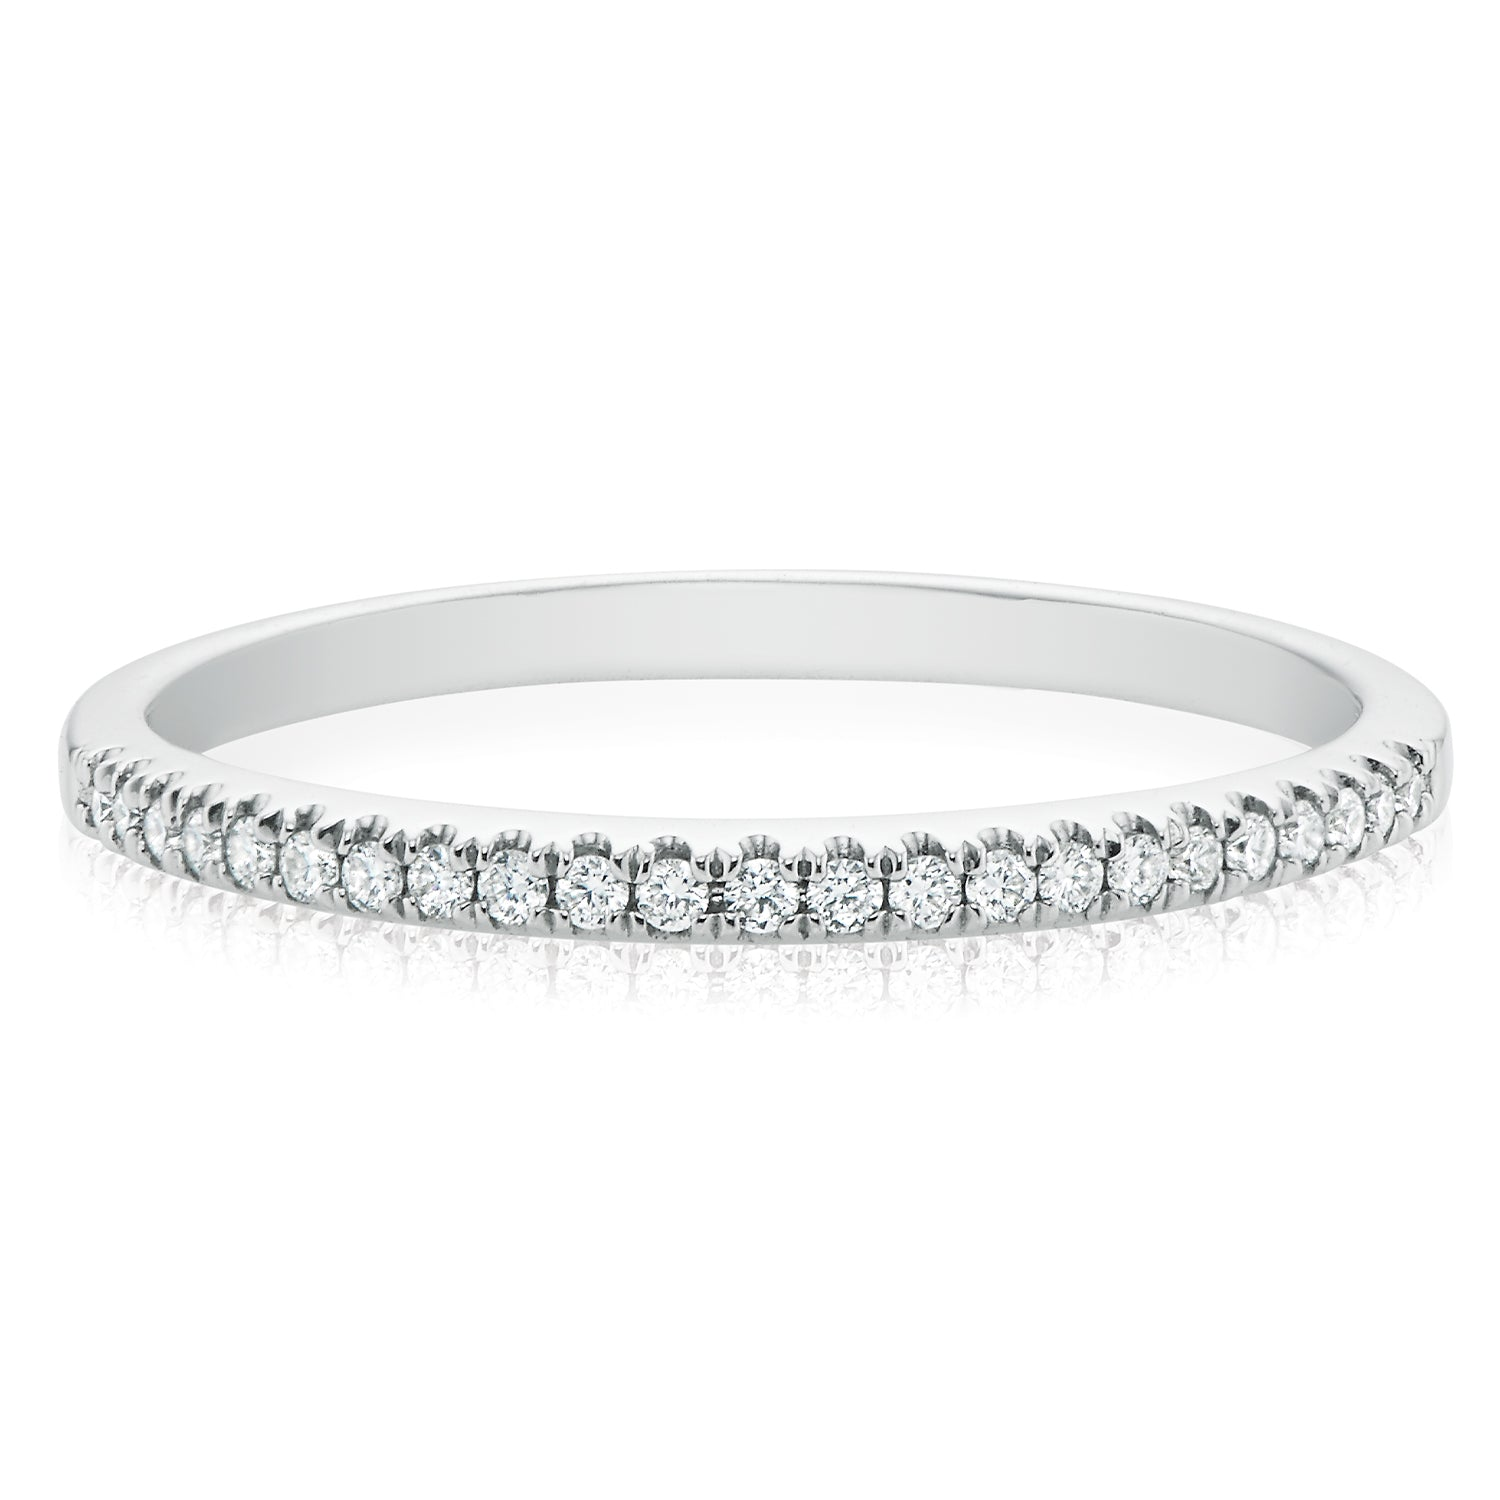 Forevermark 18ct White Gold Round Brilliant Cut with 0.11 CARAT tw of Diamonds